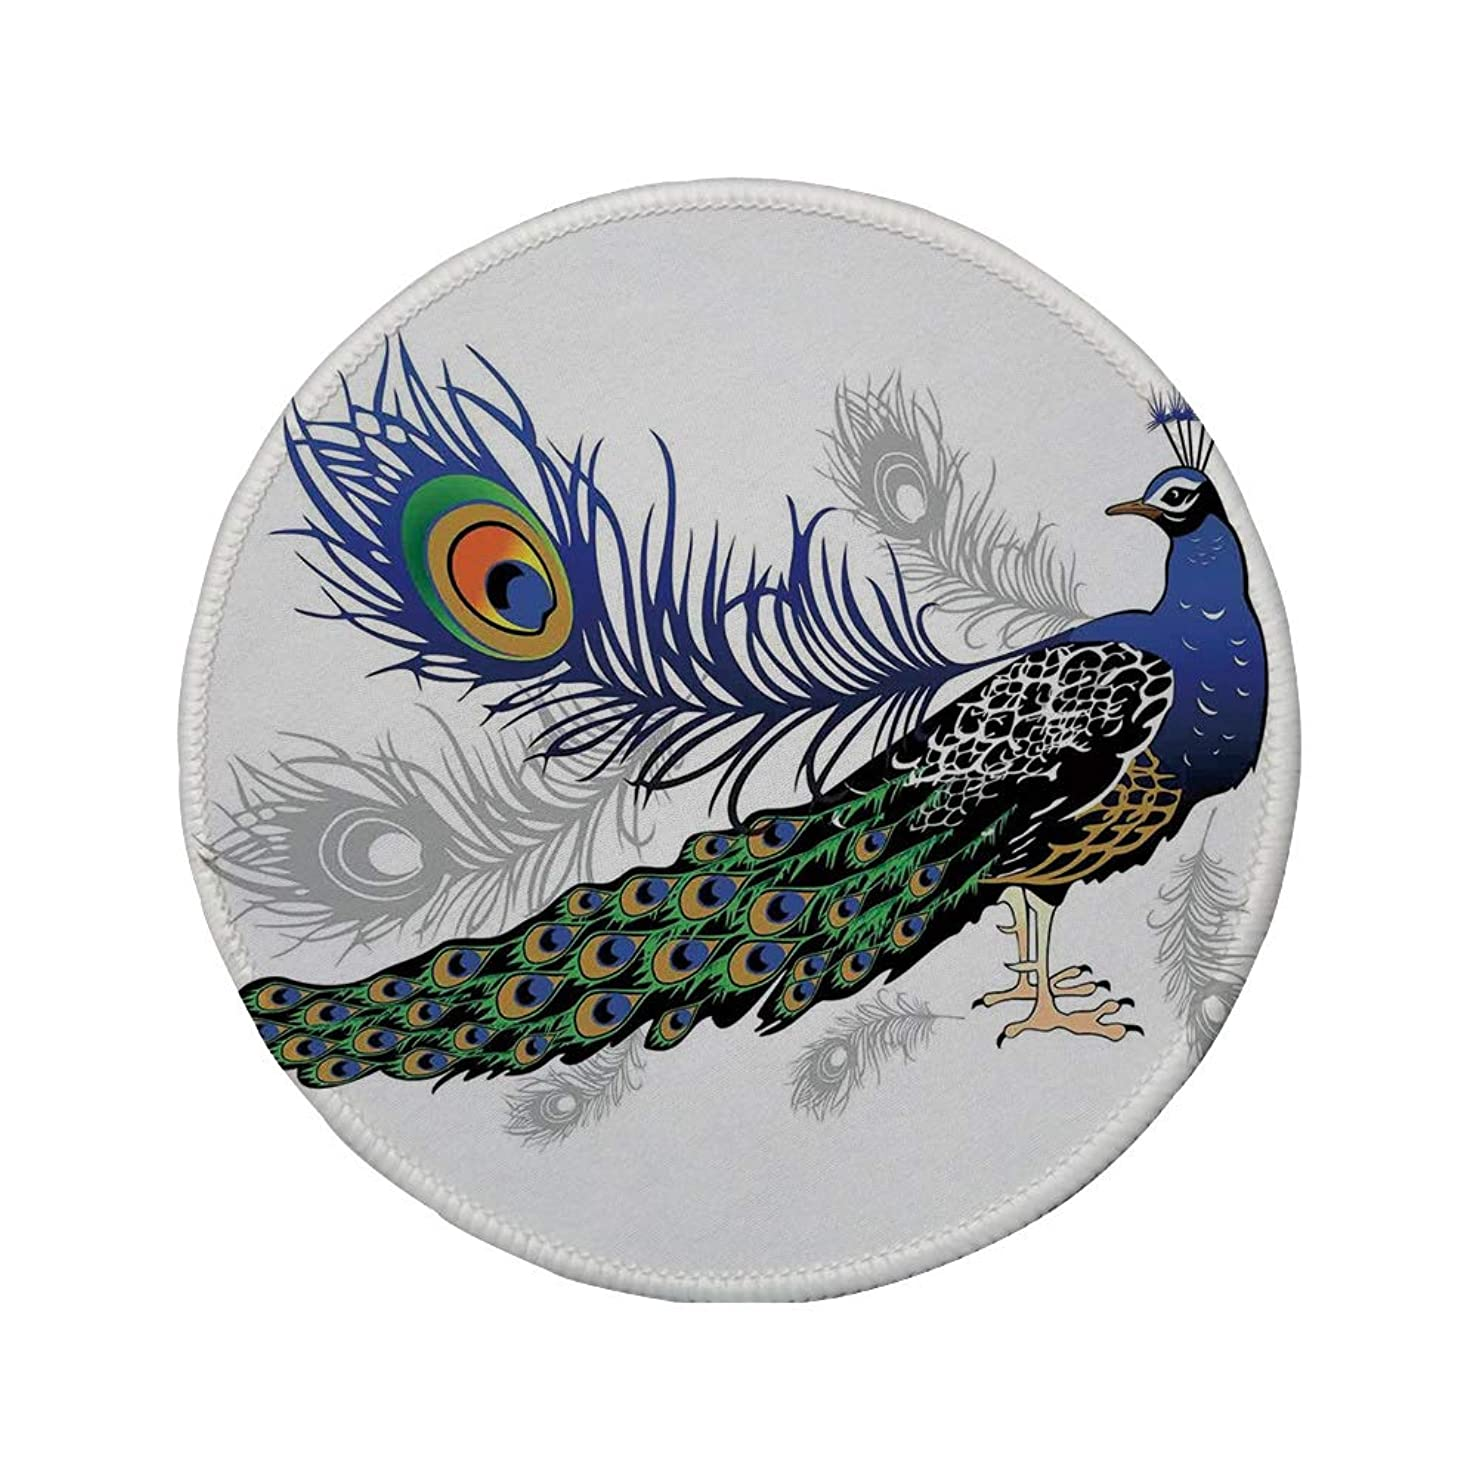 Non-Slip Rubber Round Mouse Pad,Peacock Decor,Male Peacock Feathers Springtime Wilderness Crowned Majestic Animal Pattern Decorative,11.8